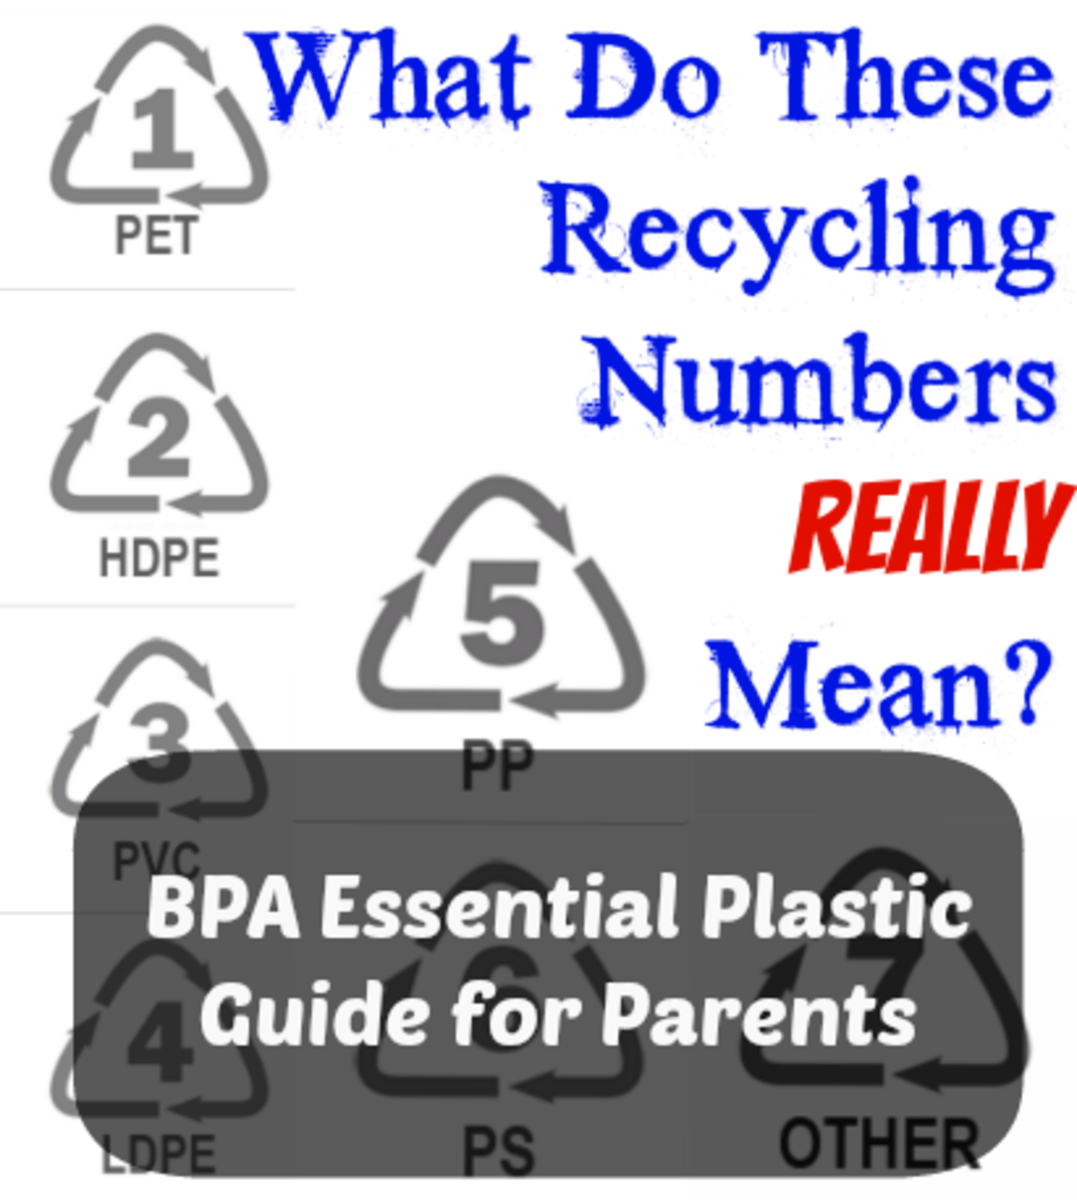 BPA Plastic Guide for Parents